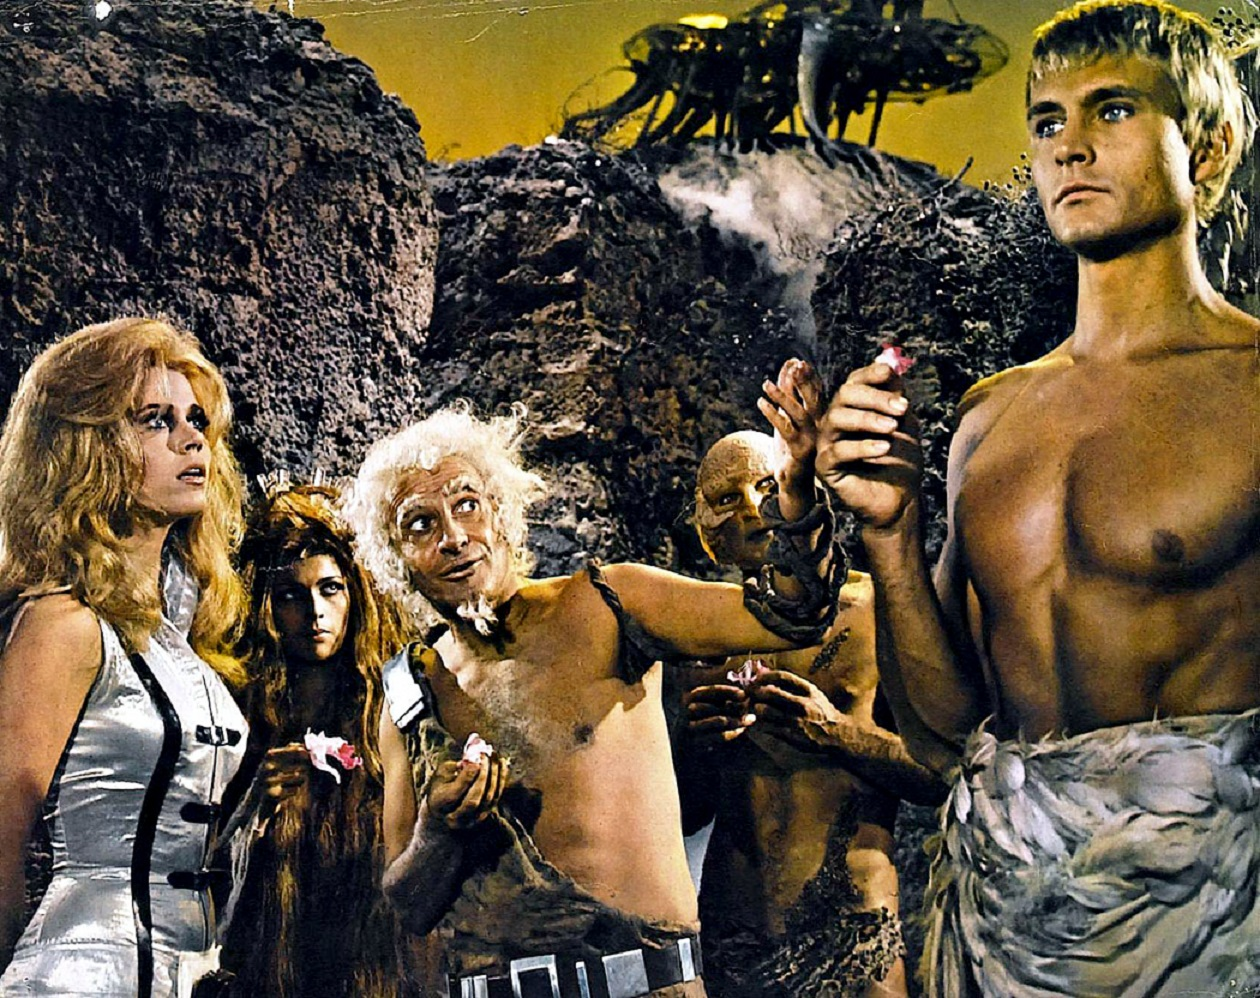 Barbarella (Jane Fonda) and the blind angel Pygar (John Phillip Law)